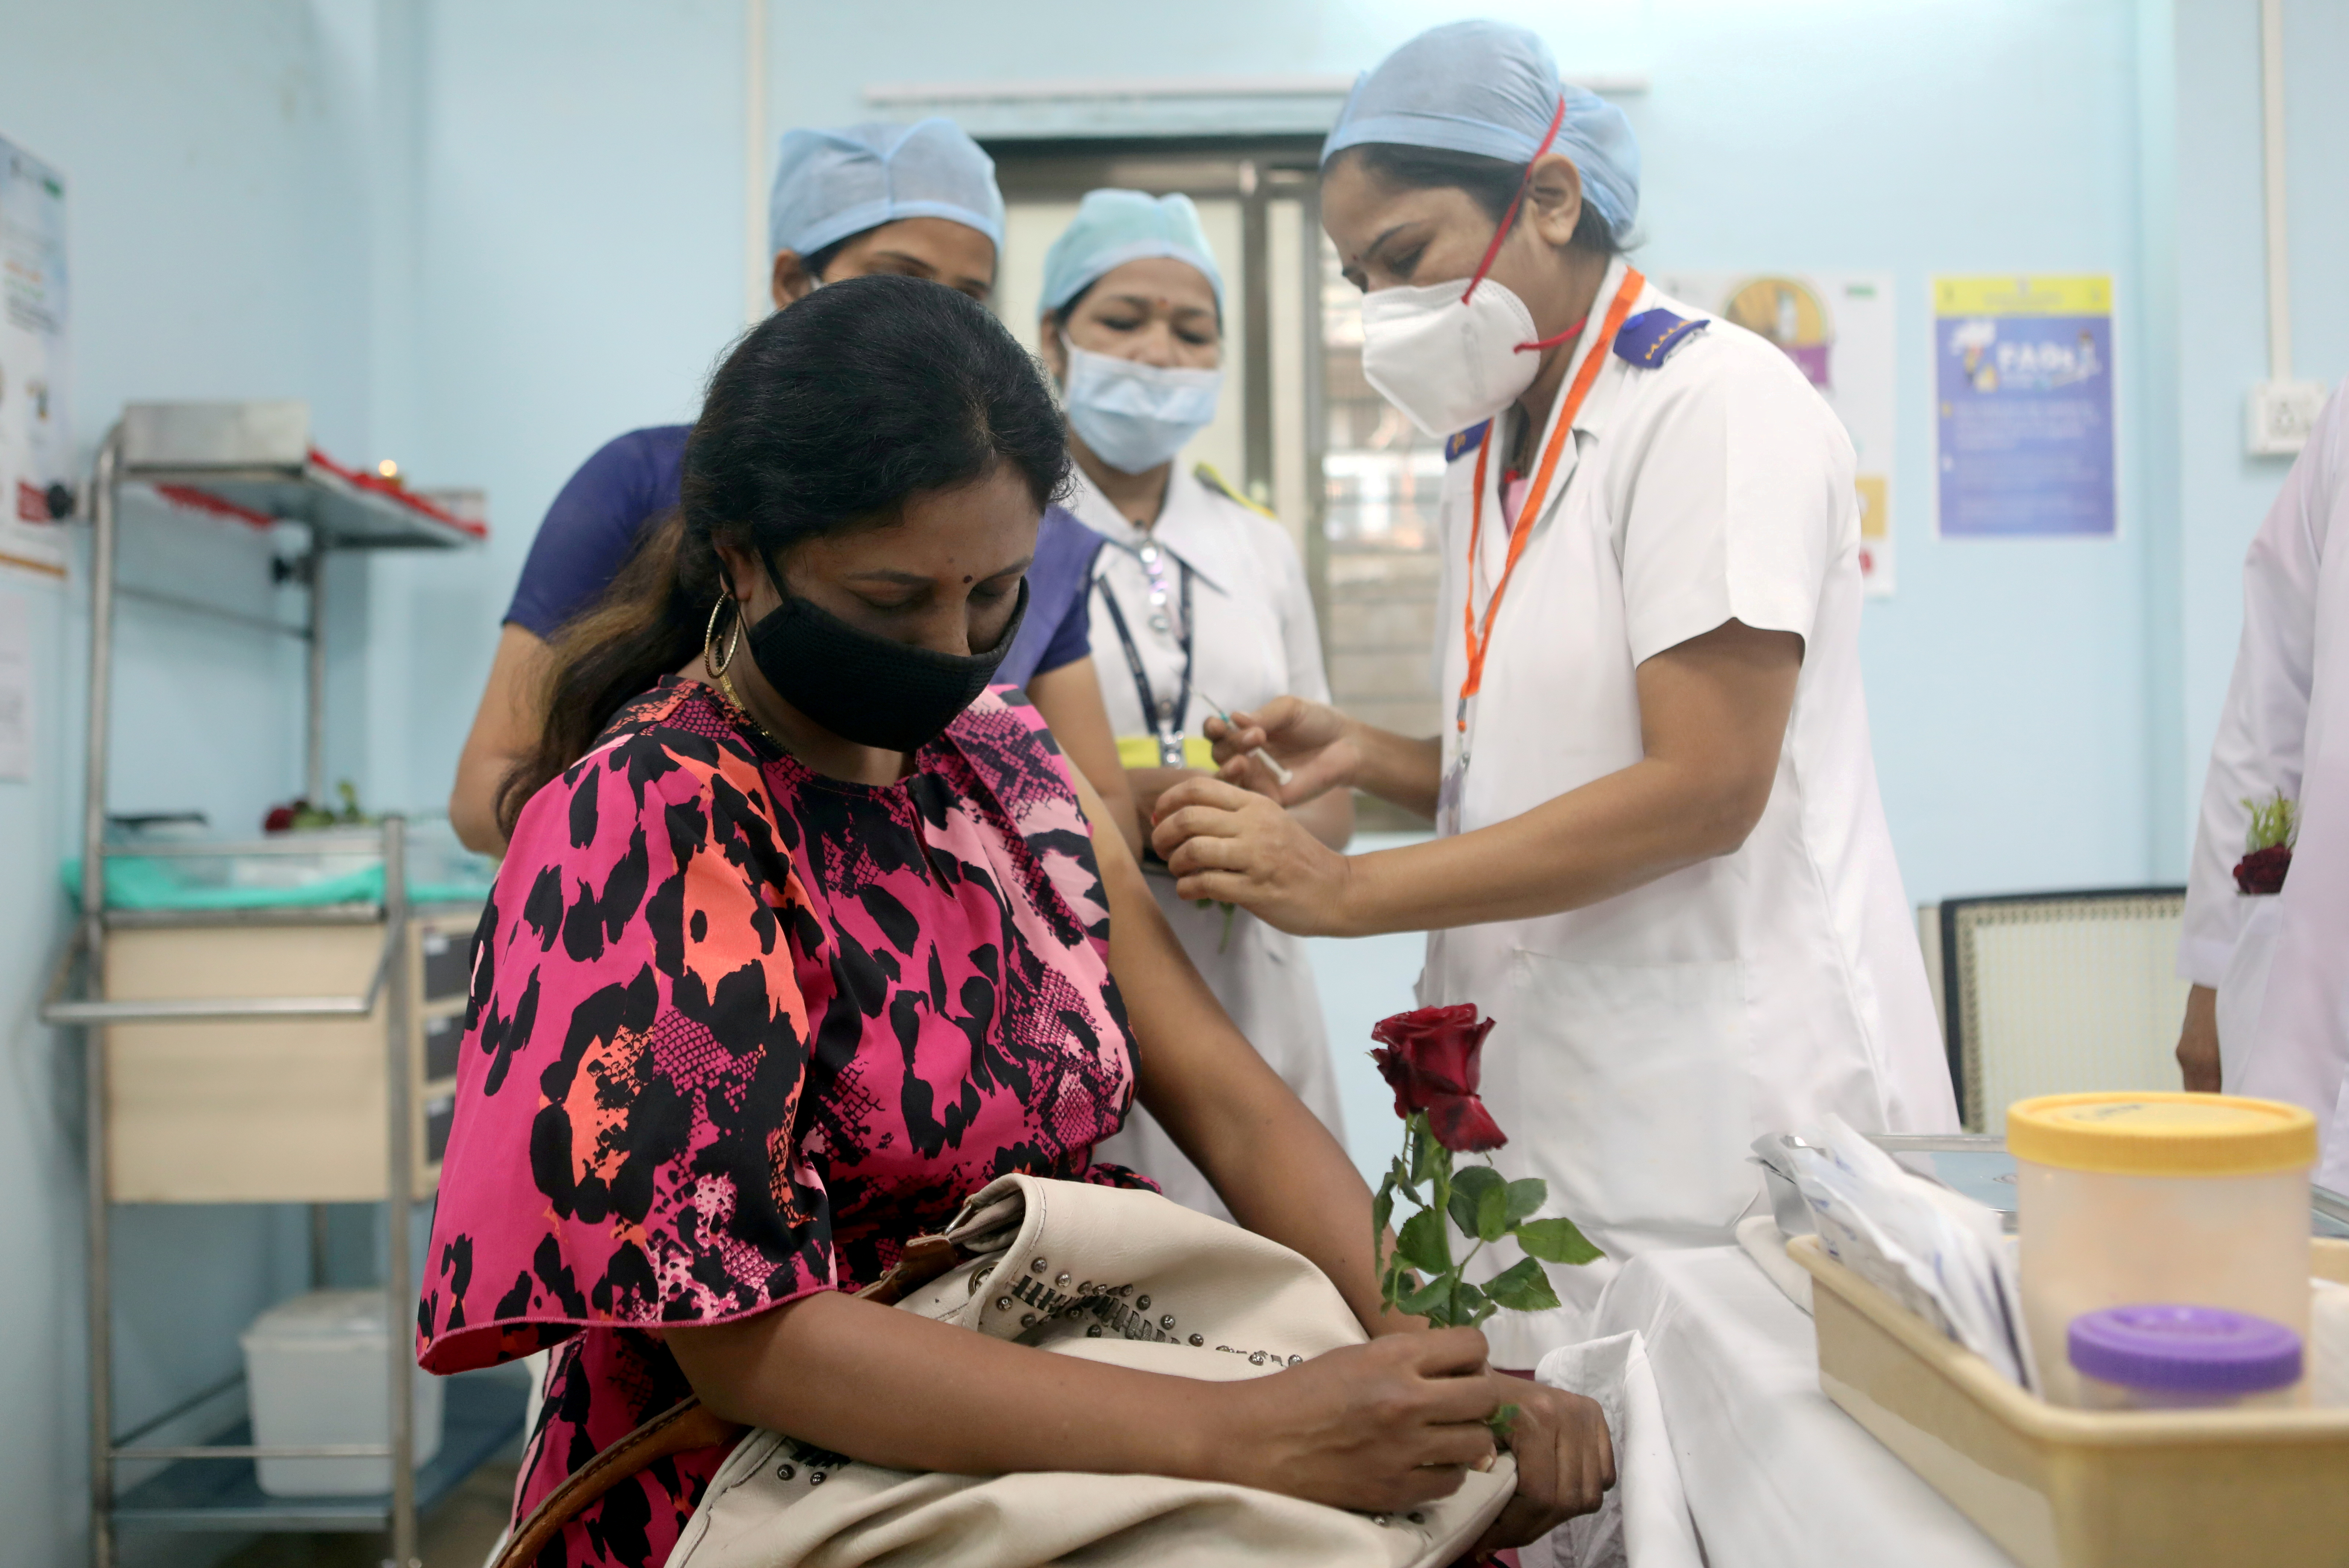 A healthcare worker holding a rose is vaccinated against COVID-19 at a medical centre in Mumbai, India, January 16, 2021. REUTERS/Francis Mascarenhas/File Photo